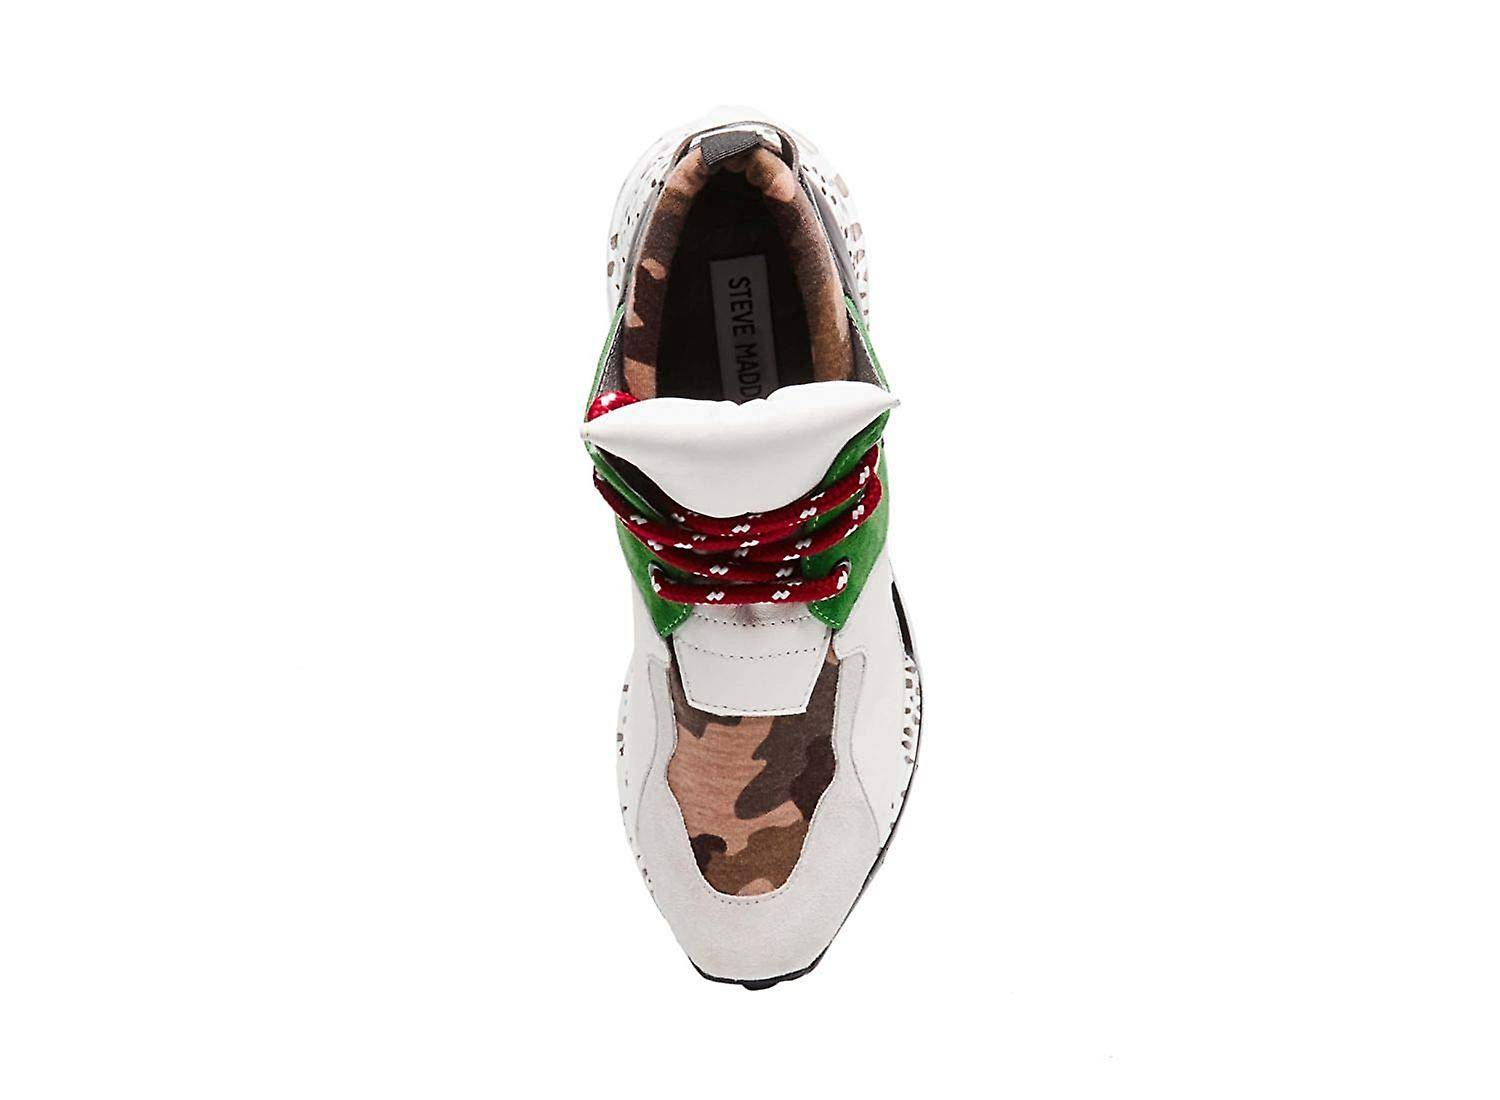 Steve Madden Femmes CLIF02S1 Cuir Bas Top Lace Up Baskets de mode MultiColor 5 US / 3 UK